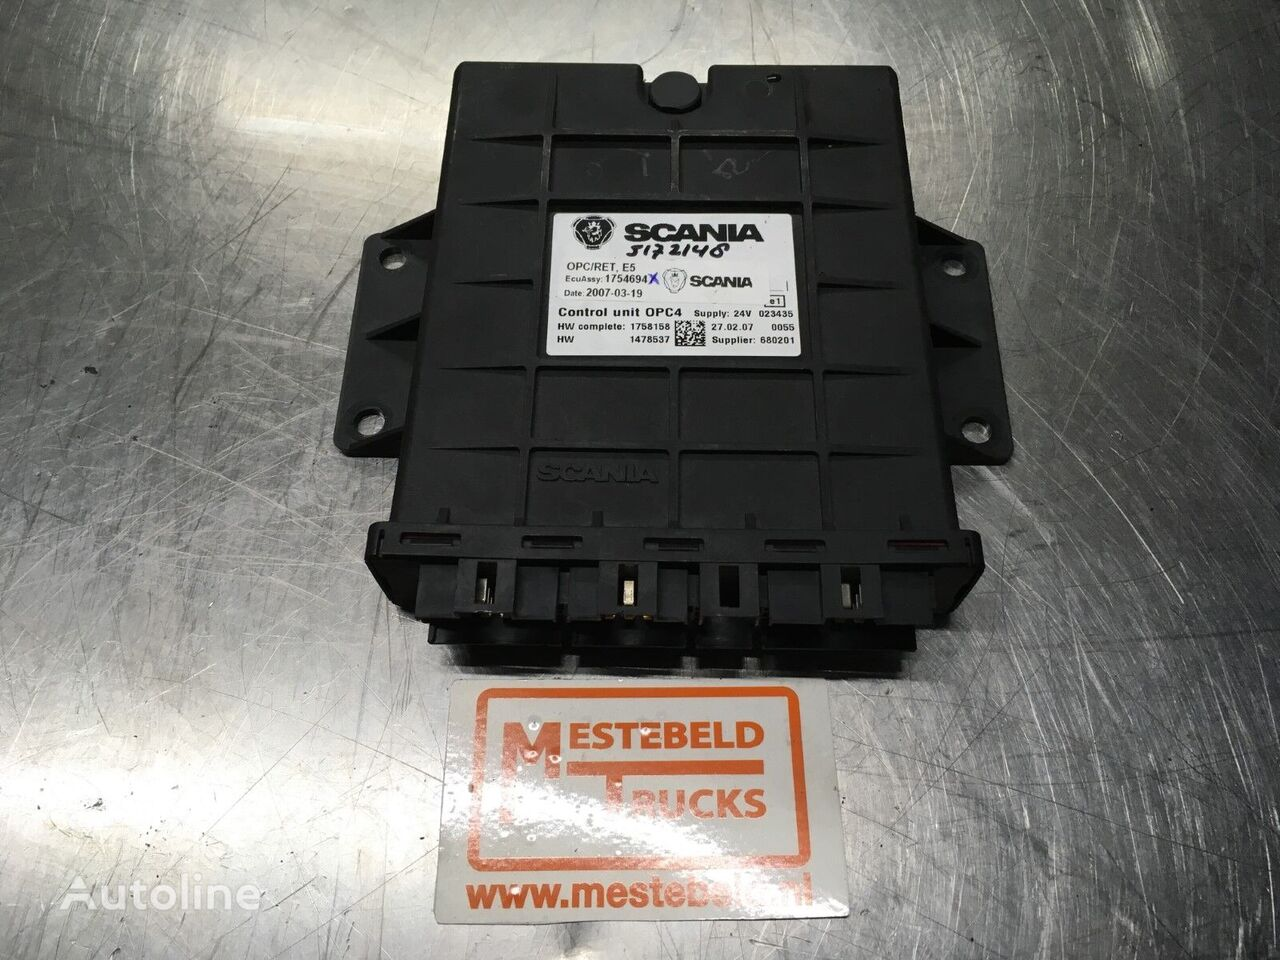 SCANIA Stuurkast OPC4 control unit for SCANIA R truck